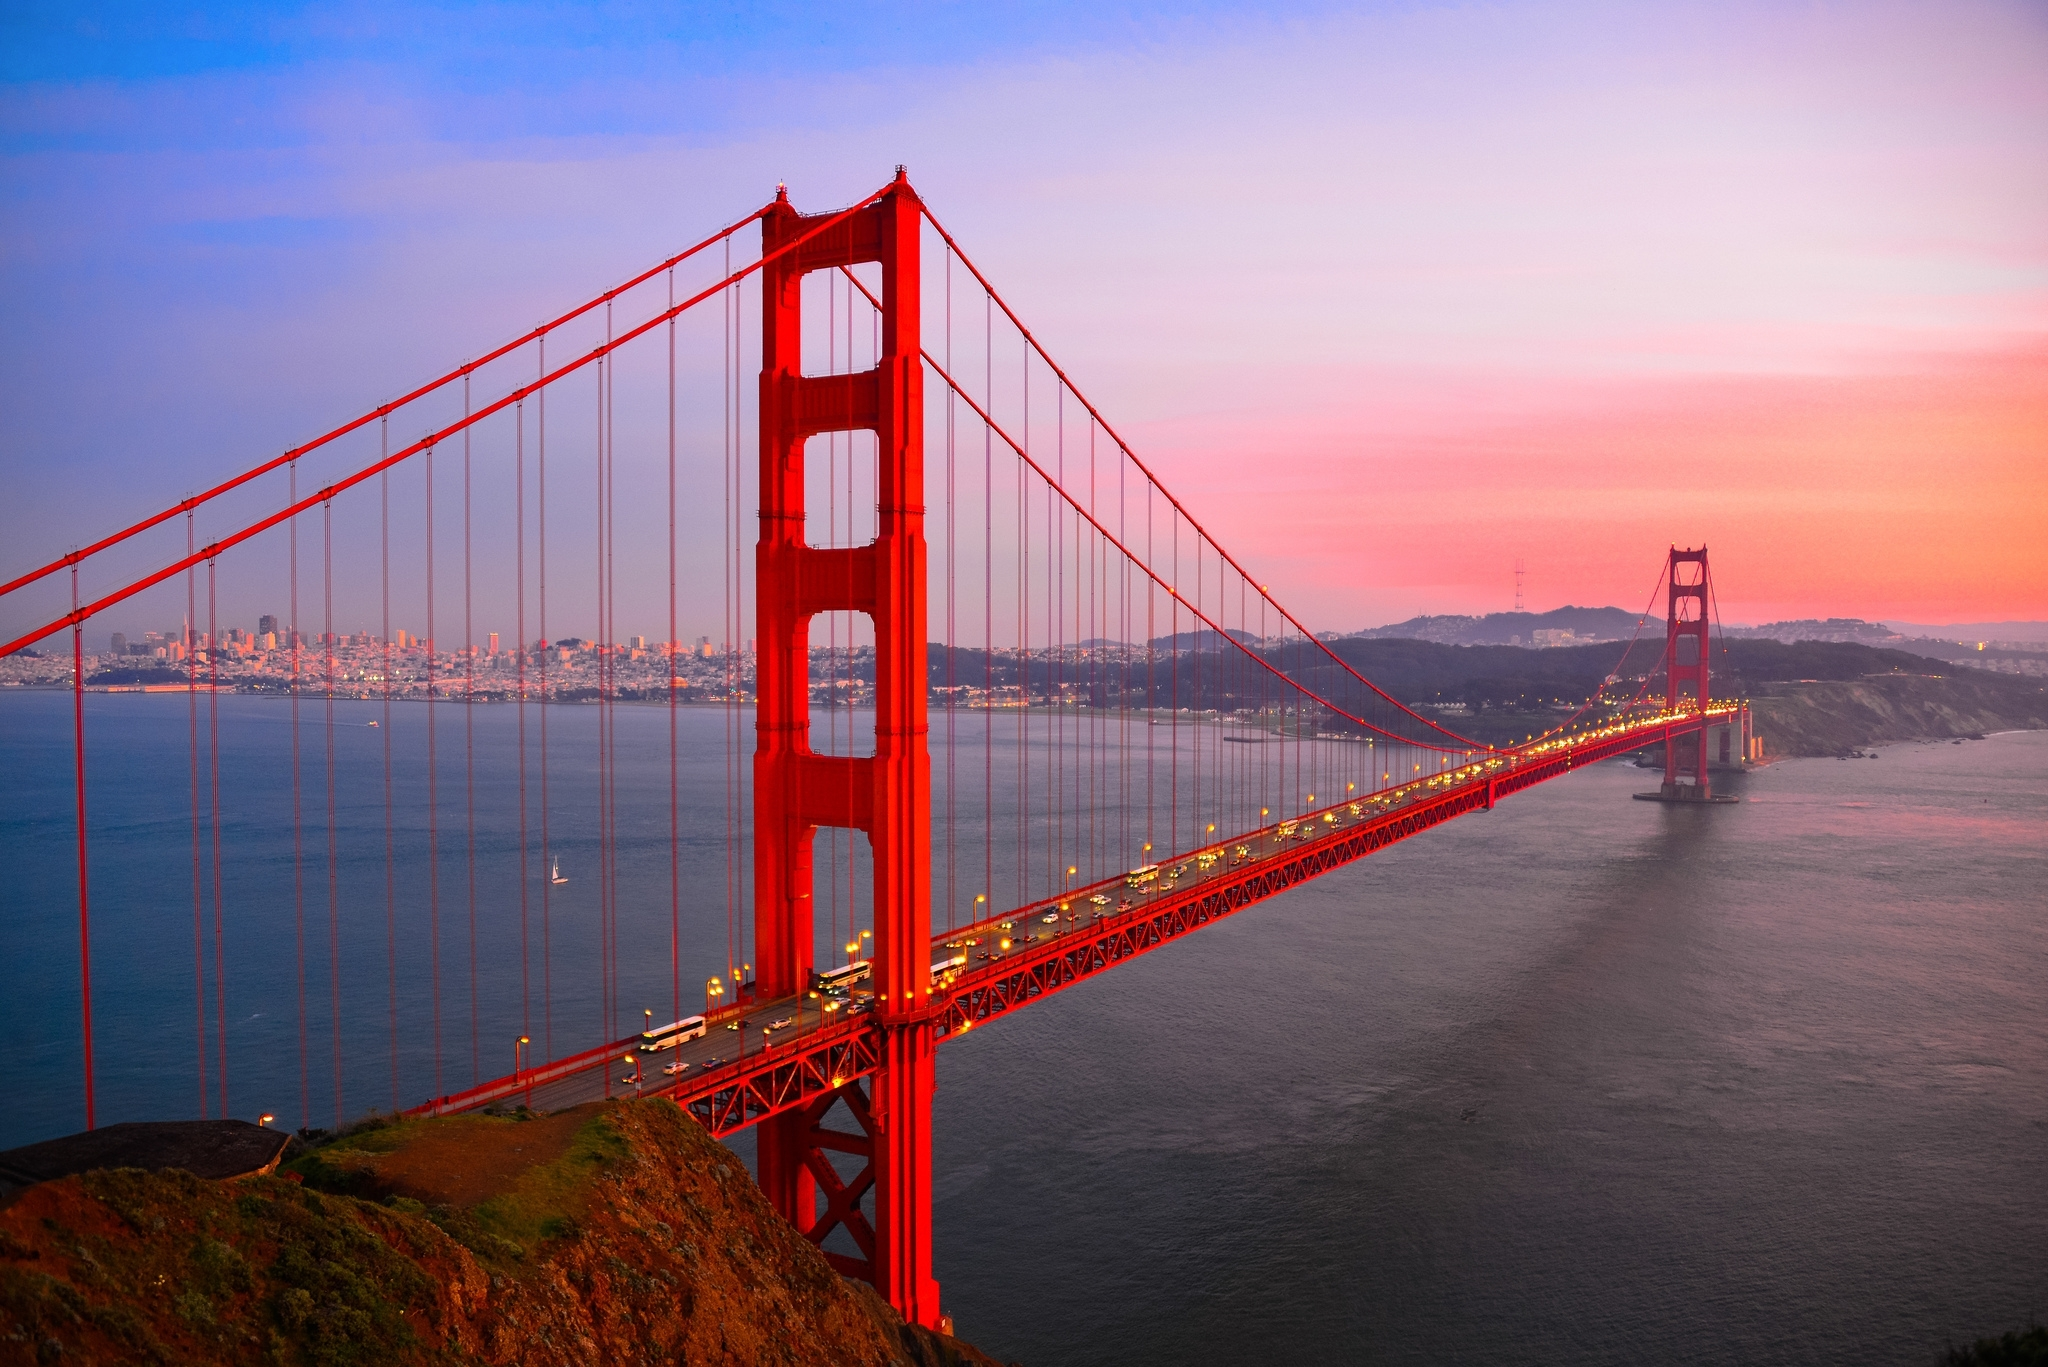 177 golden gate hd wallpapers | background images - wallpaper abyss